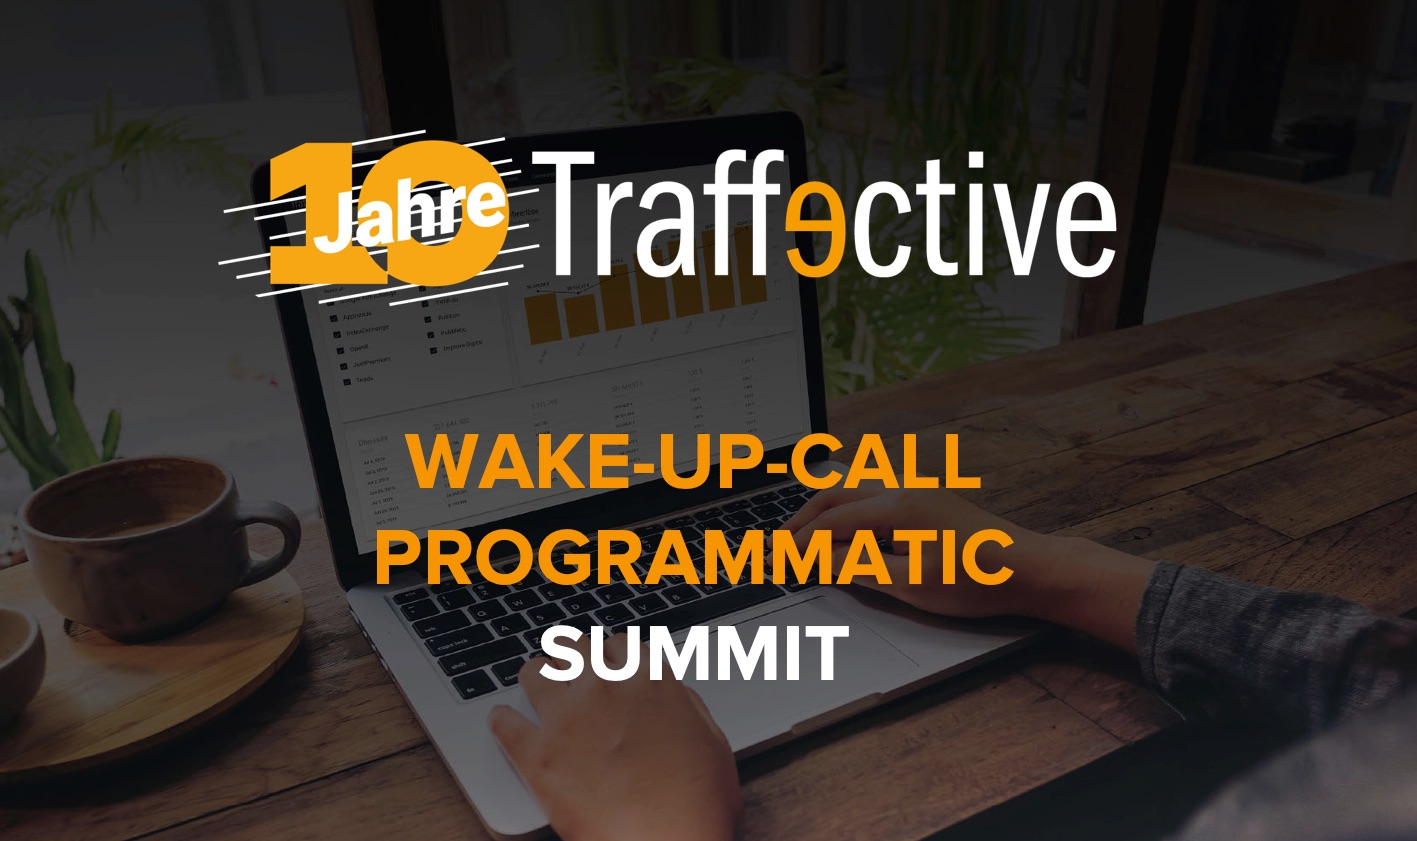 10 Jahre Traffective - Der Wake-Up-Call Programmatic 2019 in Bildern